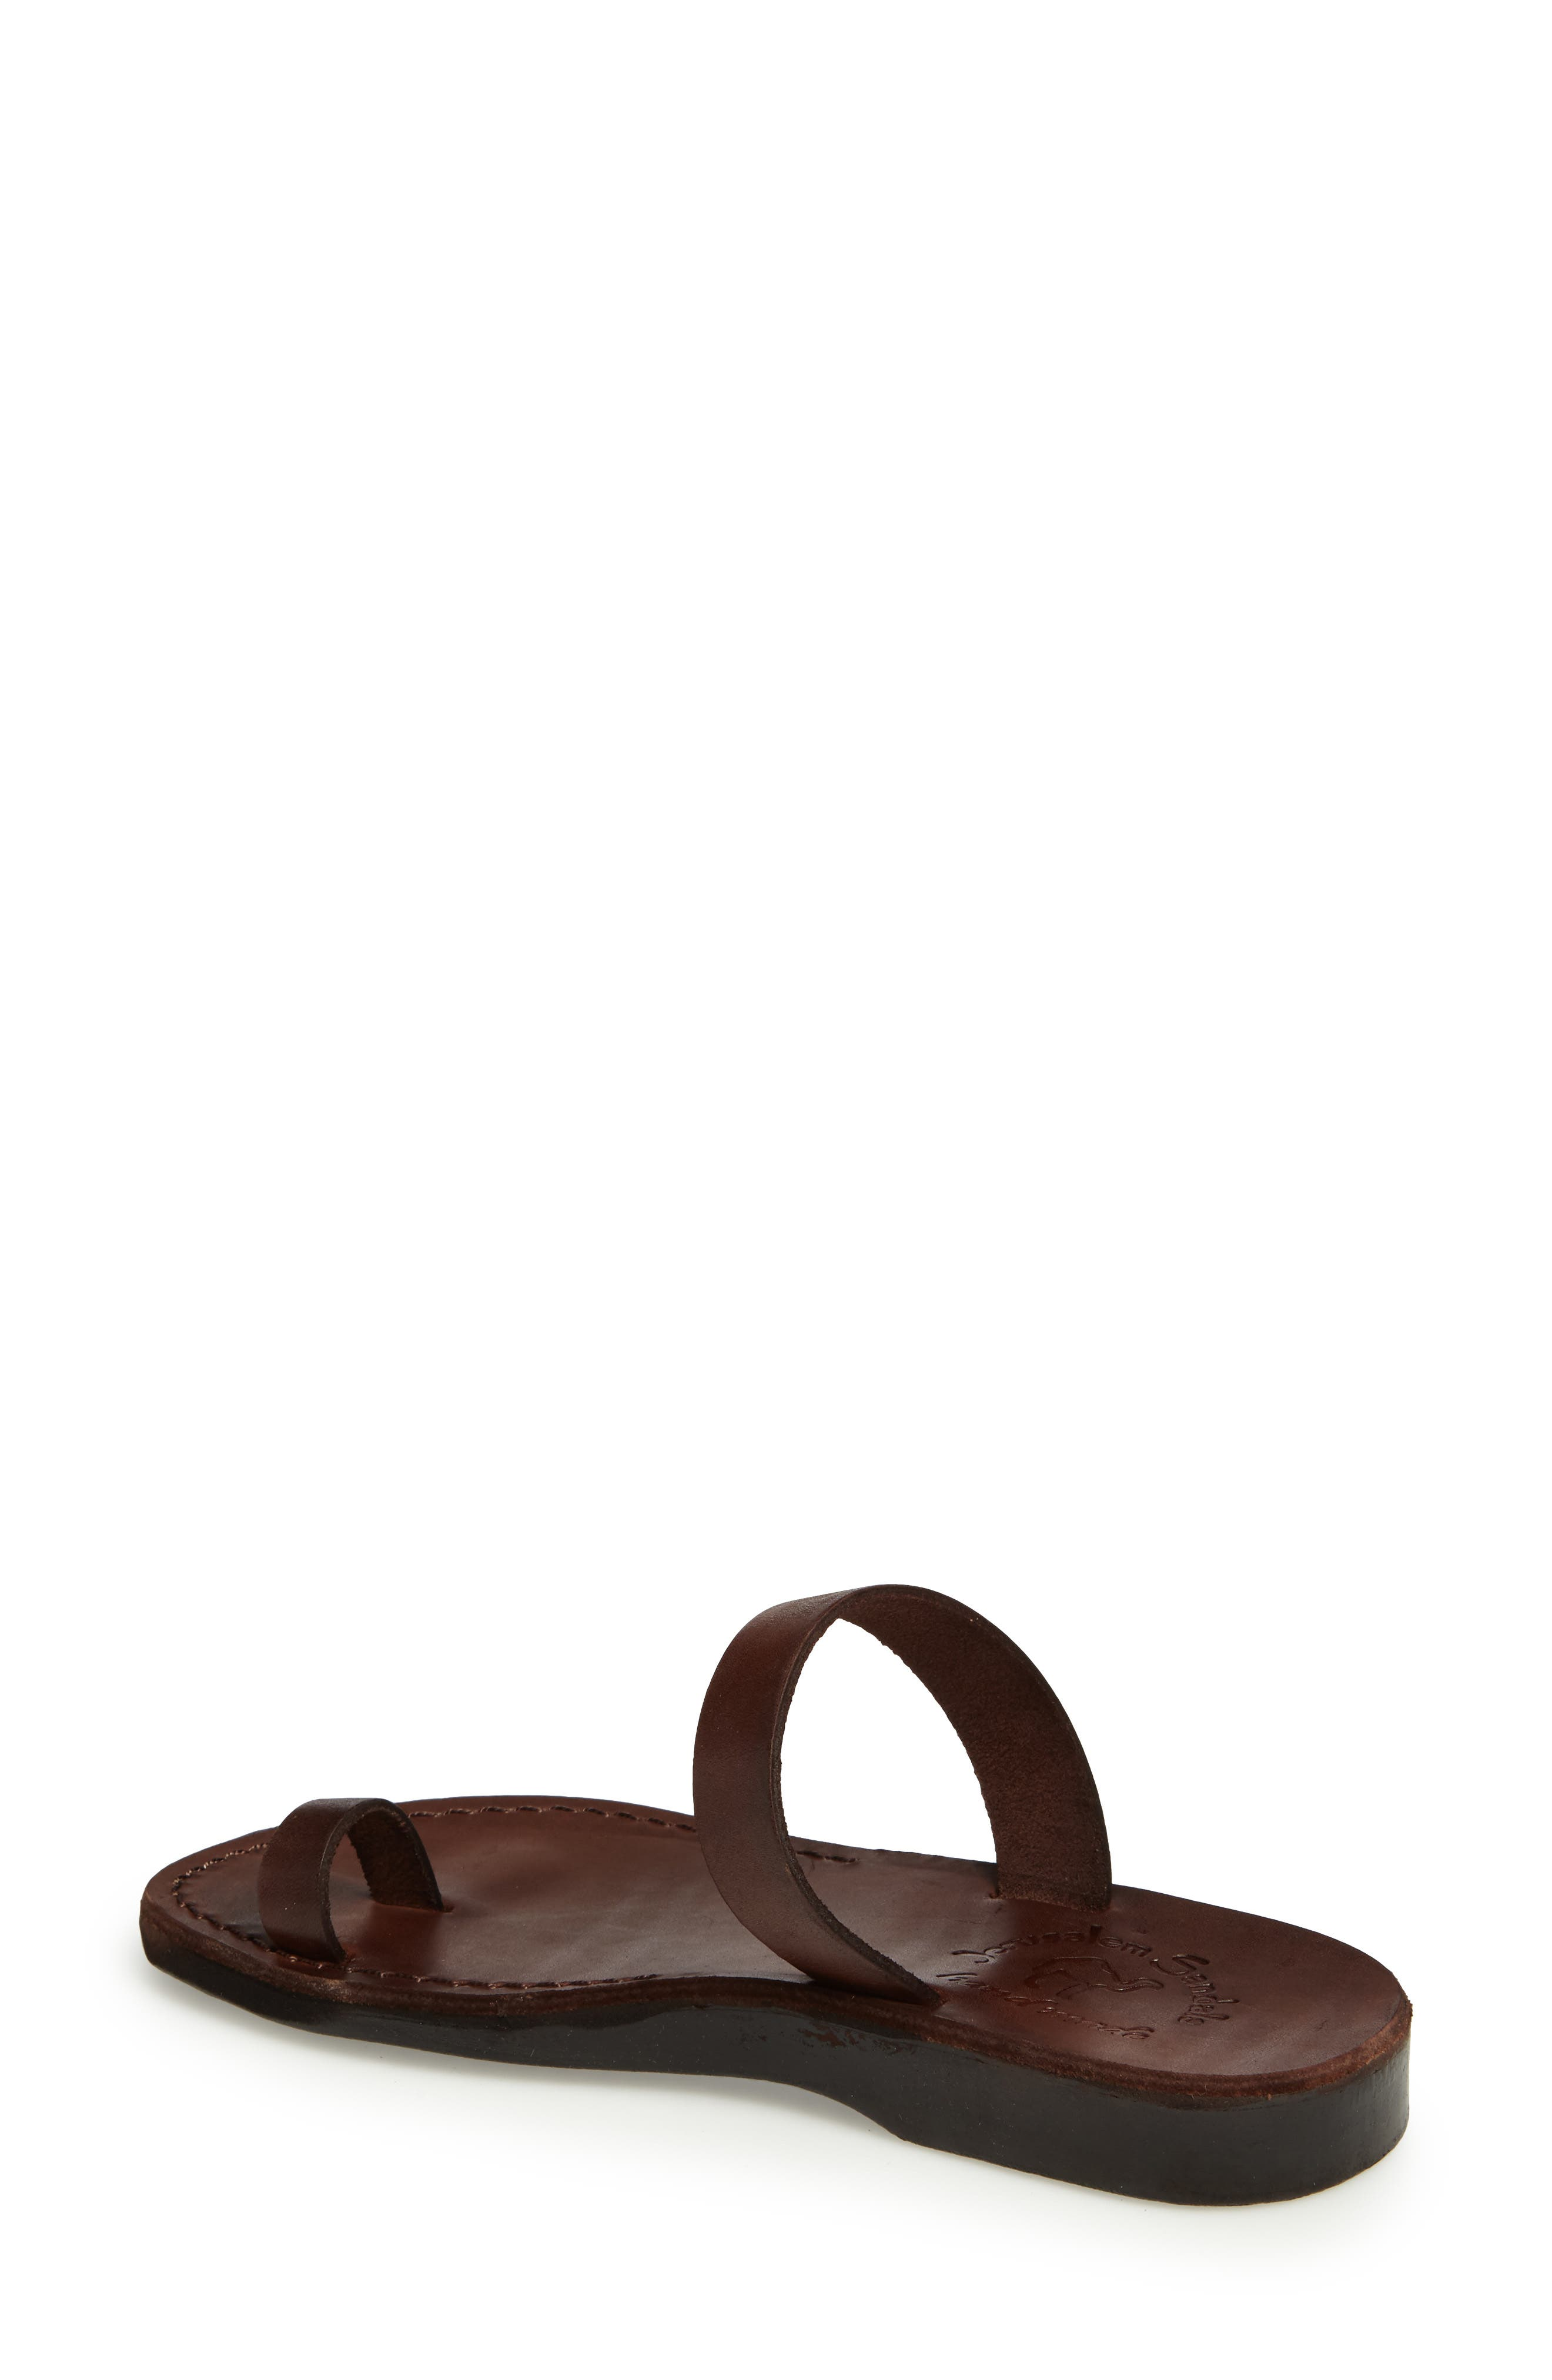 Eden Toe Loop Sandal,                             Alternate thumbnail 2, color,                             BROWN LEATHER